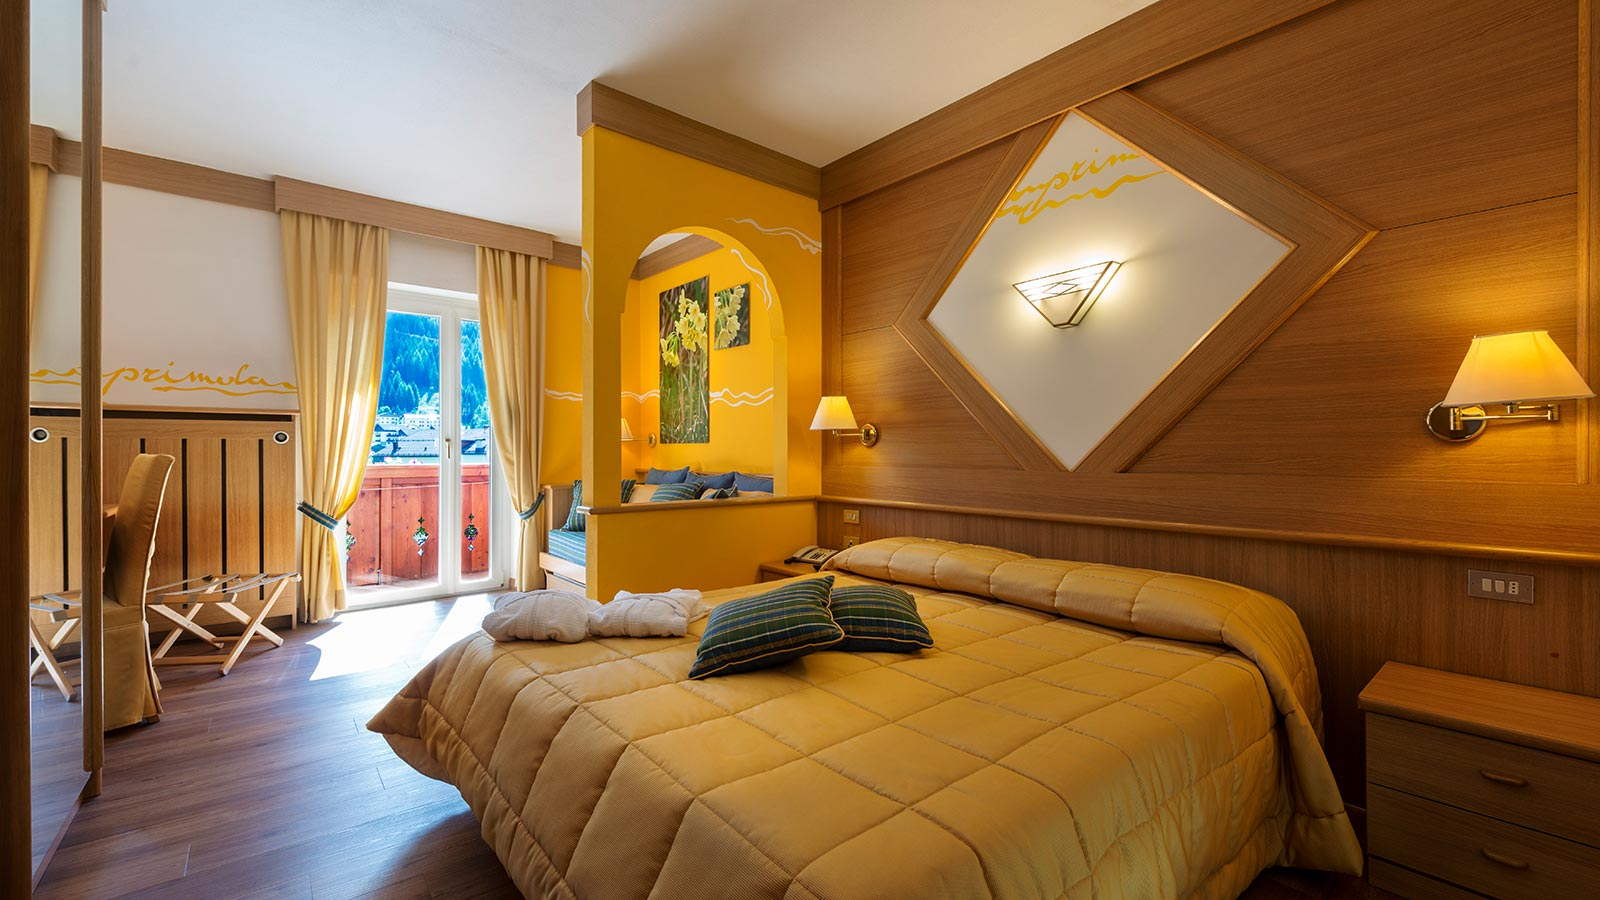 a confortable hotel room, the junior at hotel La Serenella